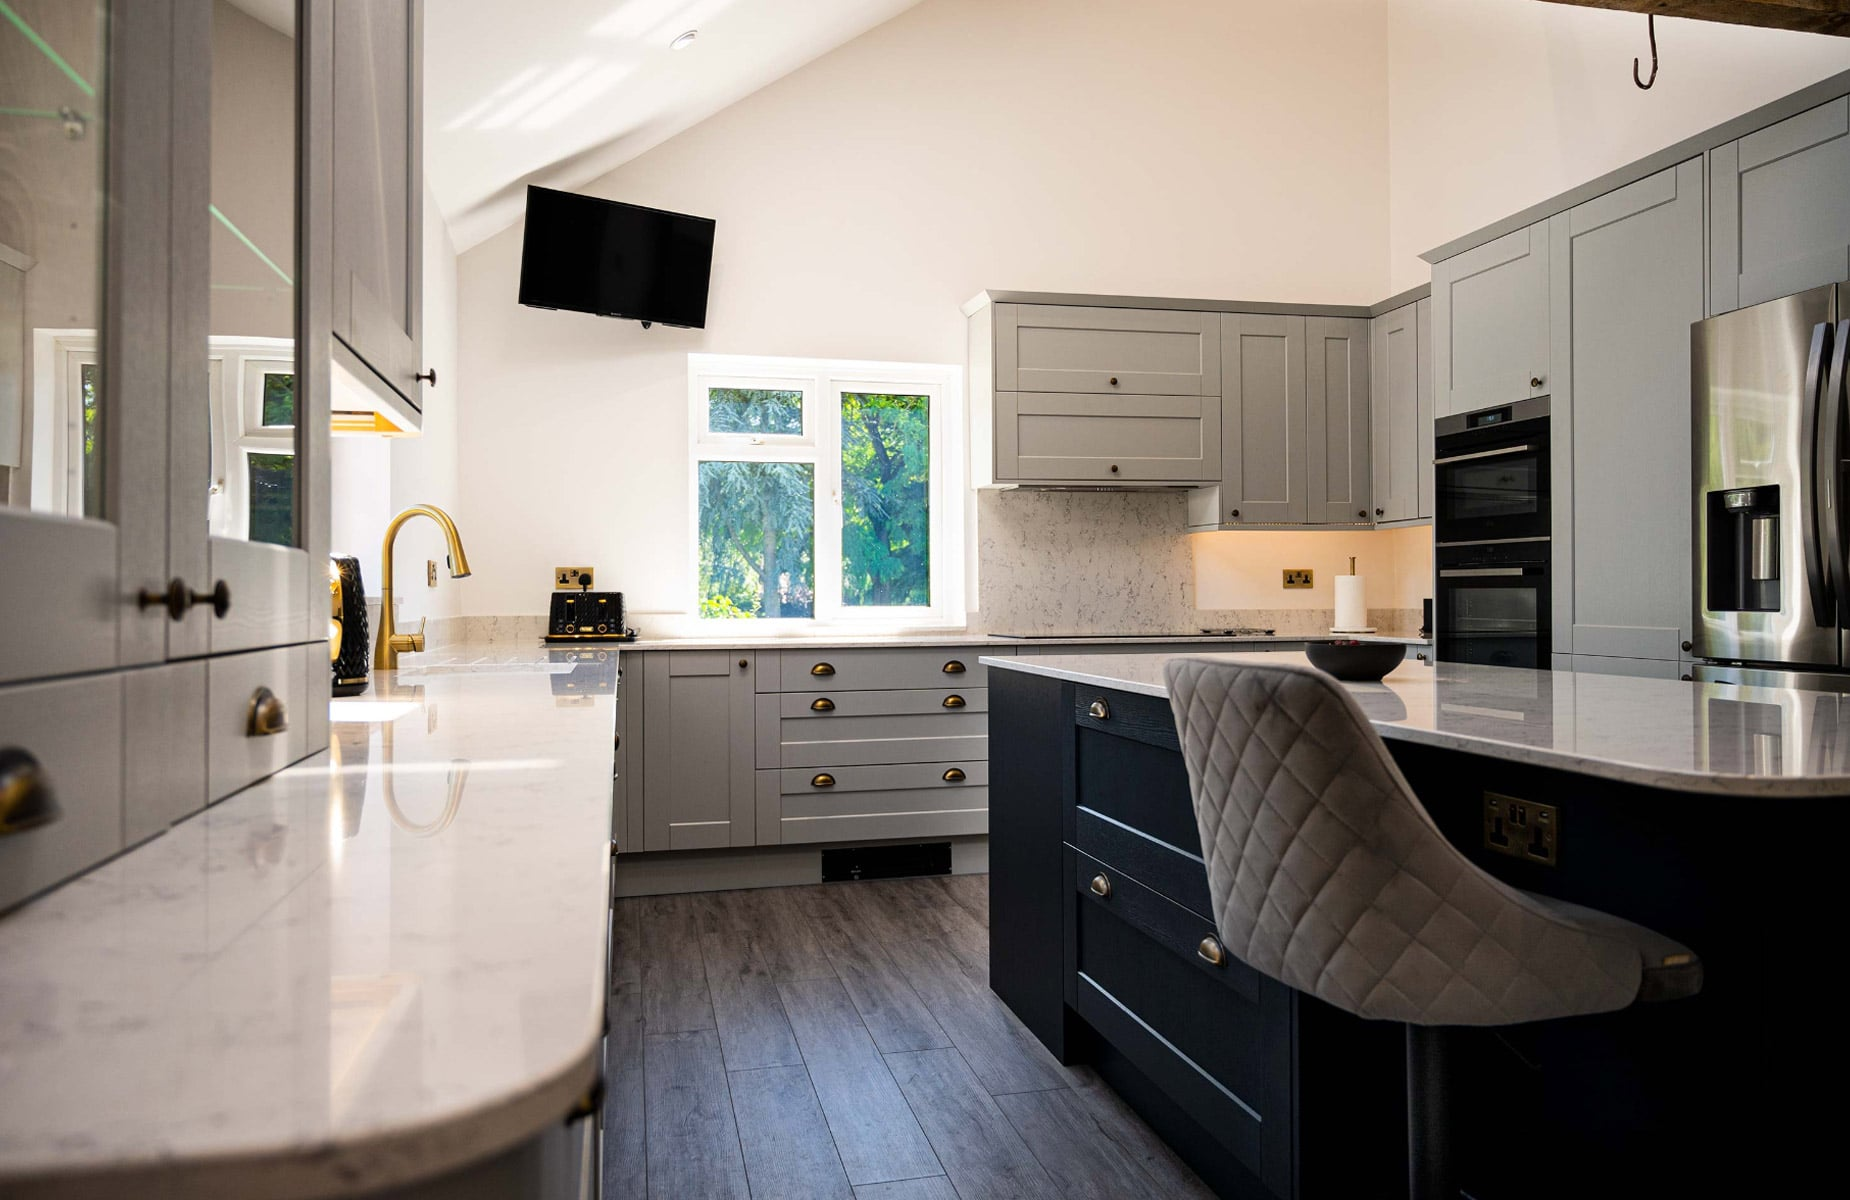 WP Creative, Design and Marketing Agency Suffolk, Photography Services, Professional Construction Project Images, Kitchen